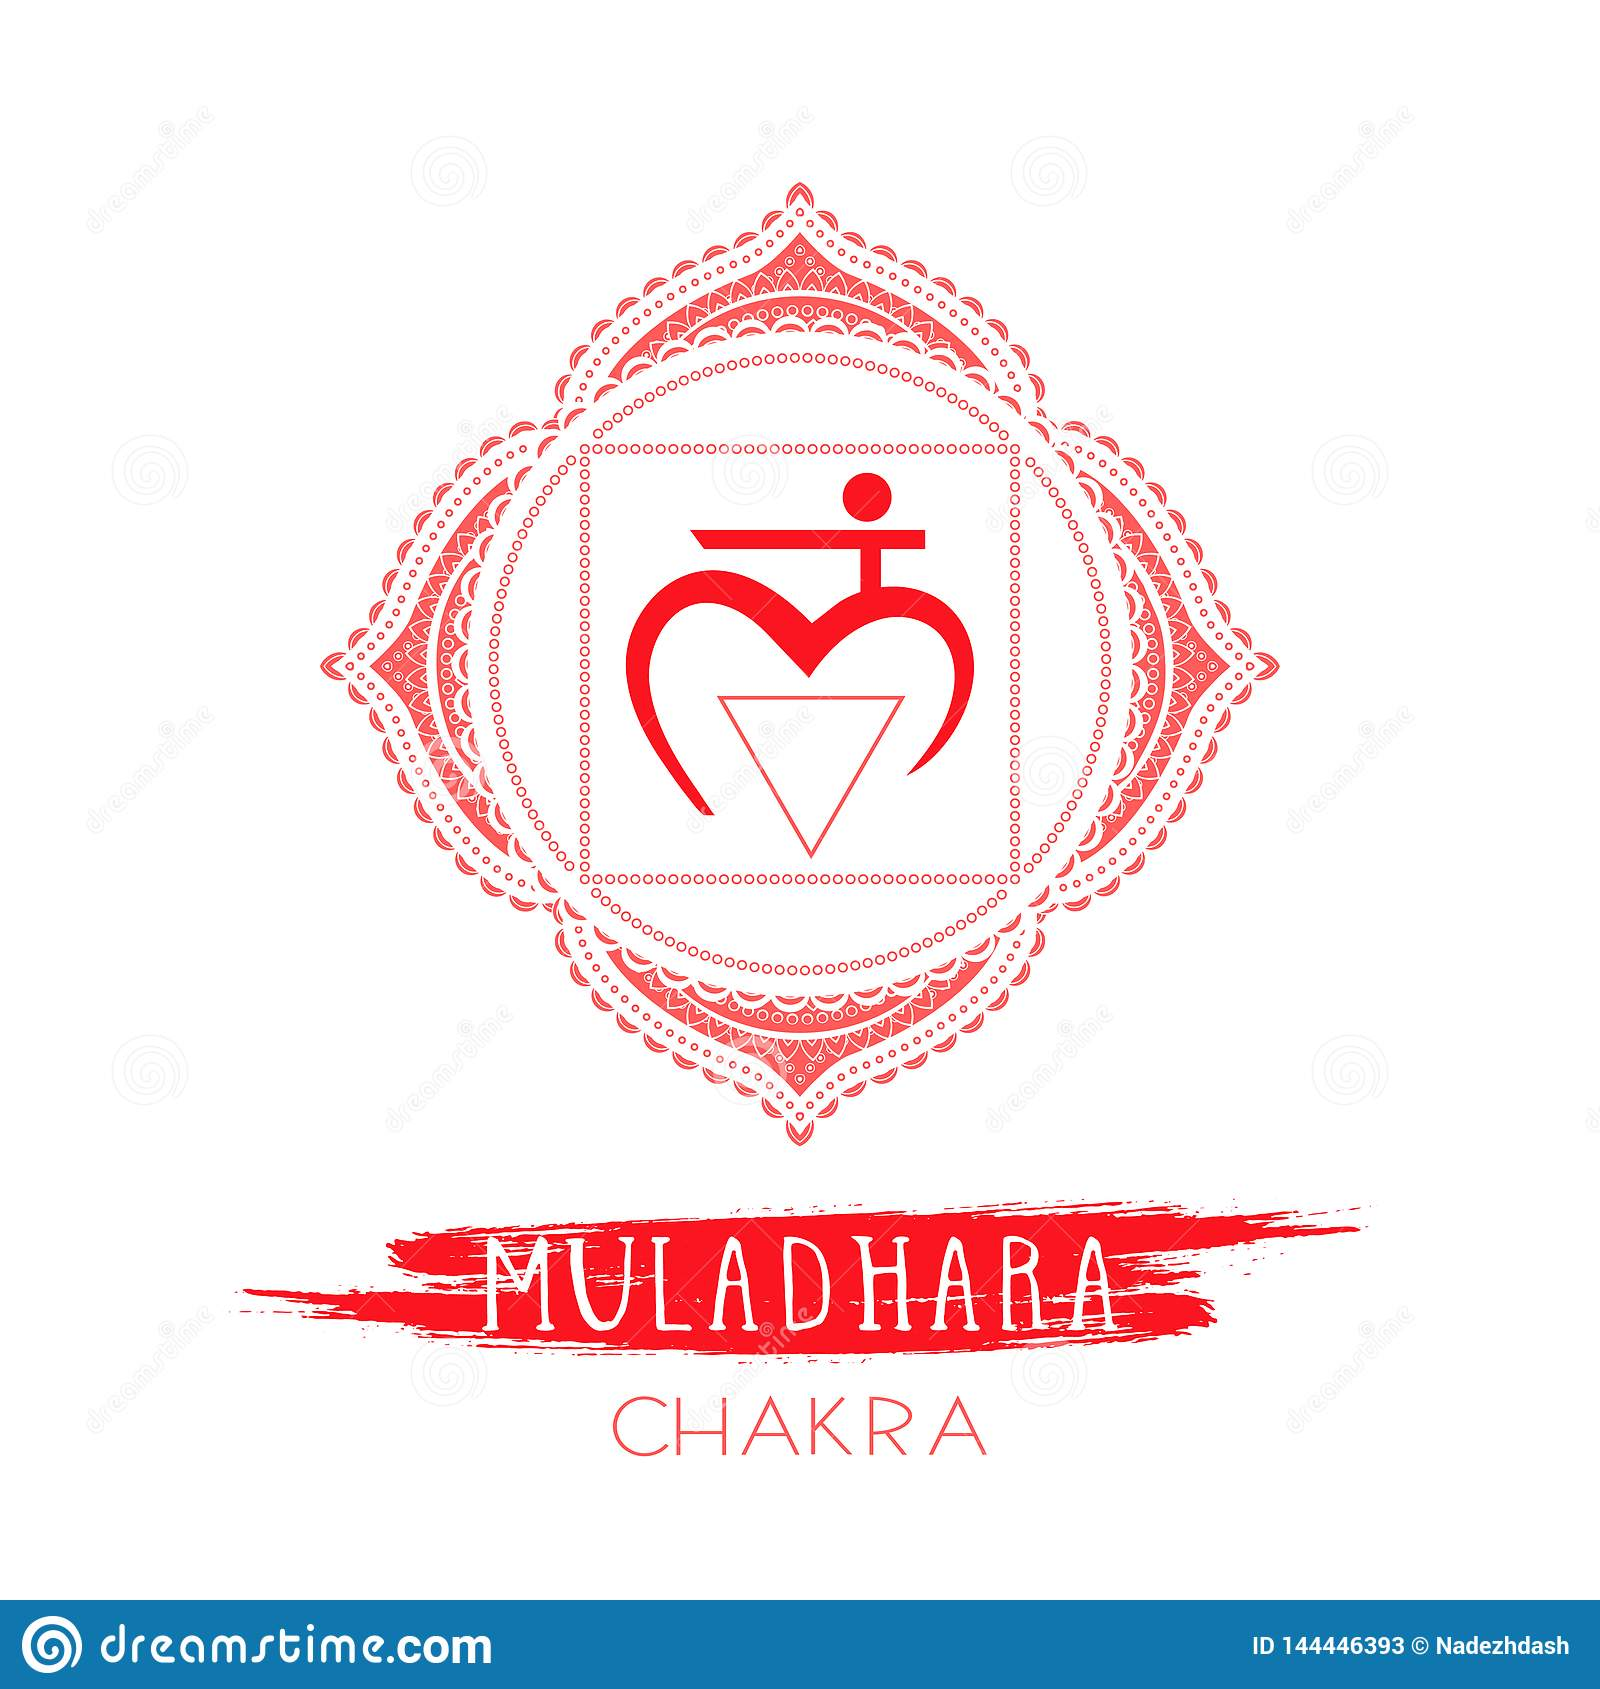 Vector illustration with symbol Muladhara - Root chakra and watercolor element on white background